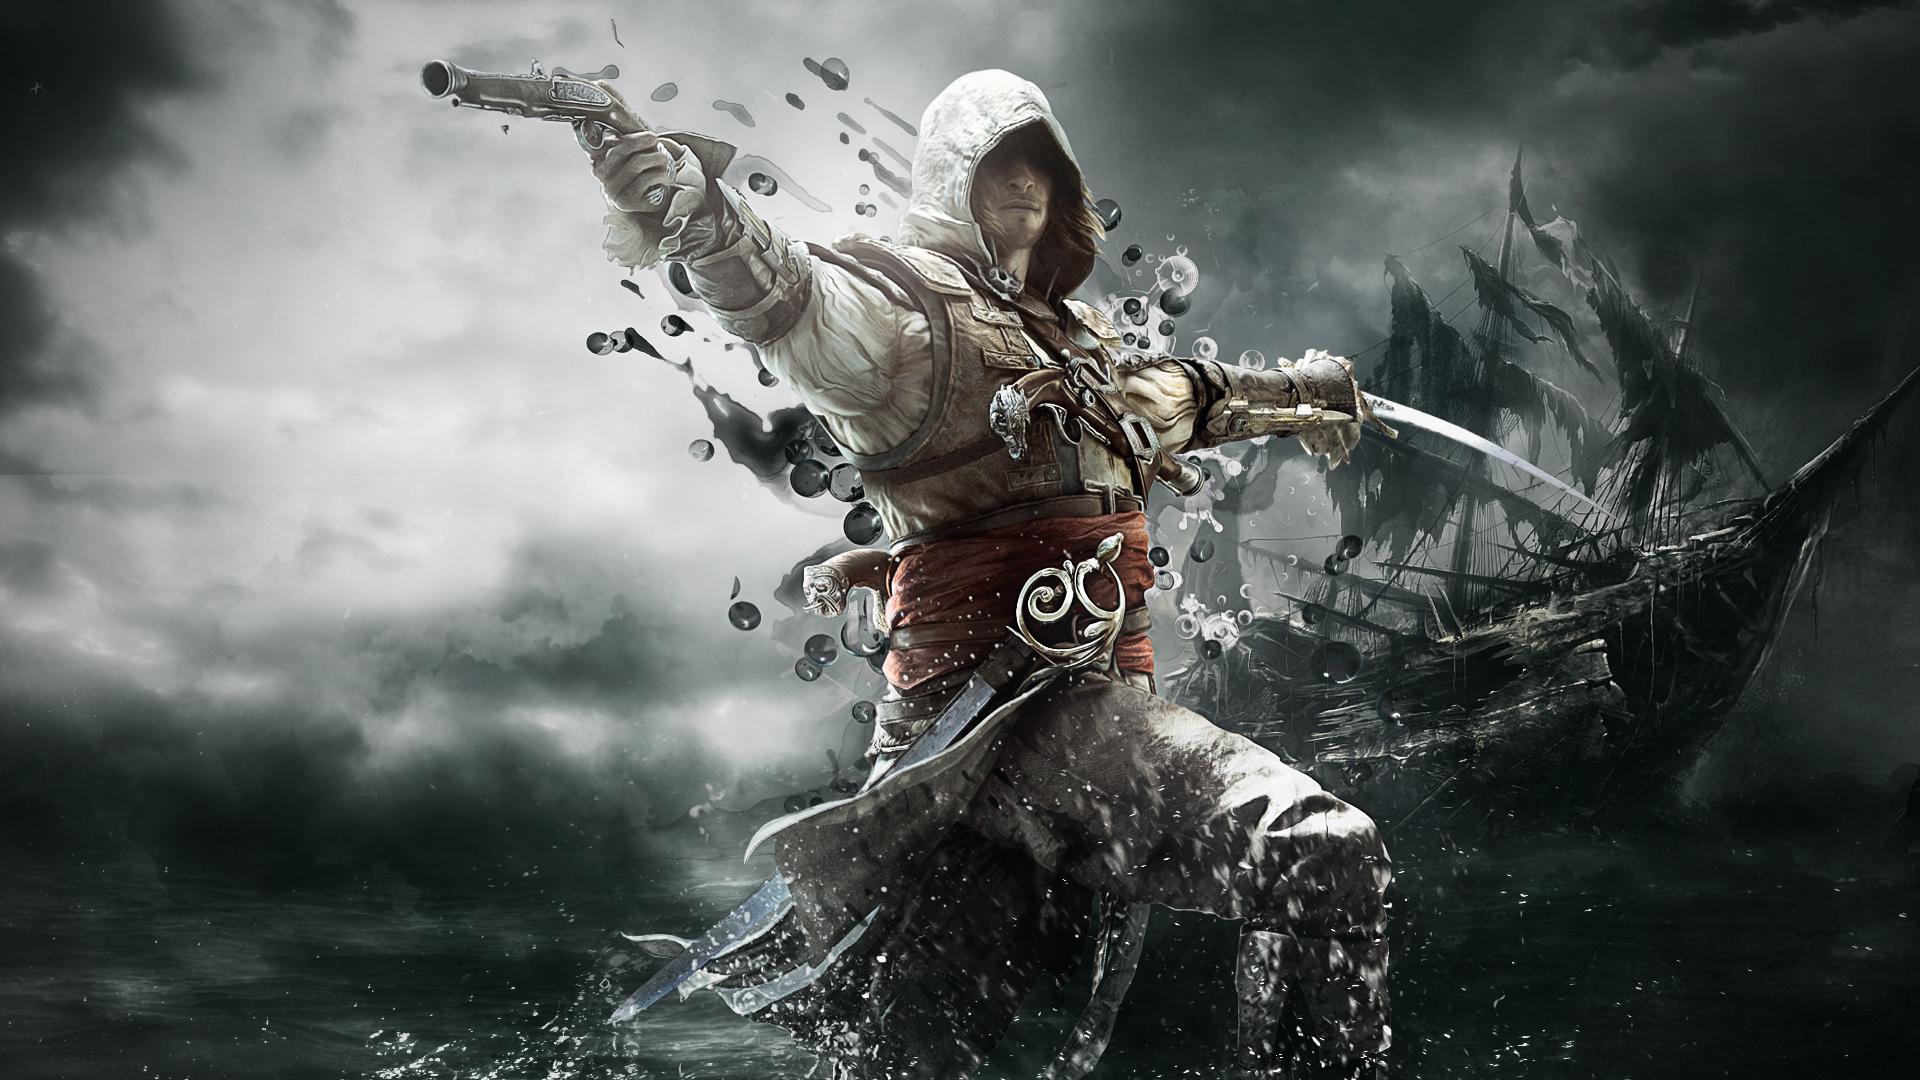 Assassins Creed IV Black Flag wallpaper   803604 1920x1080